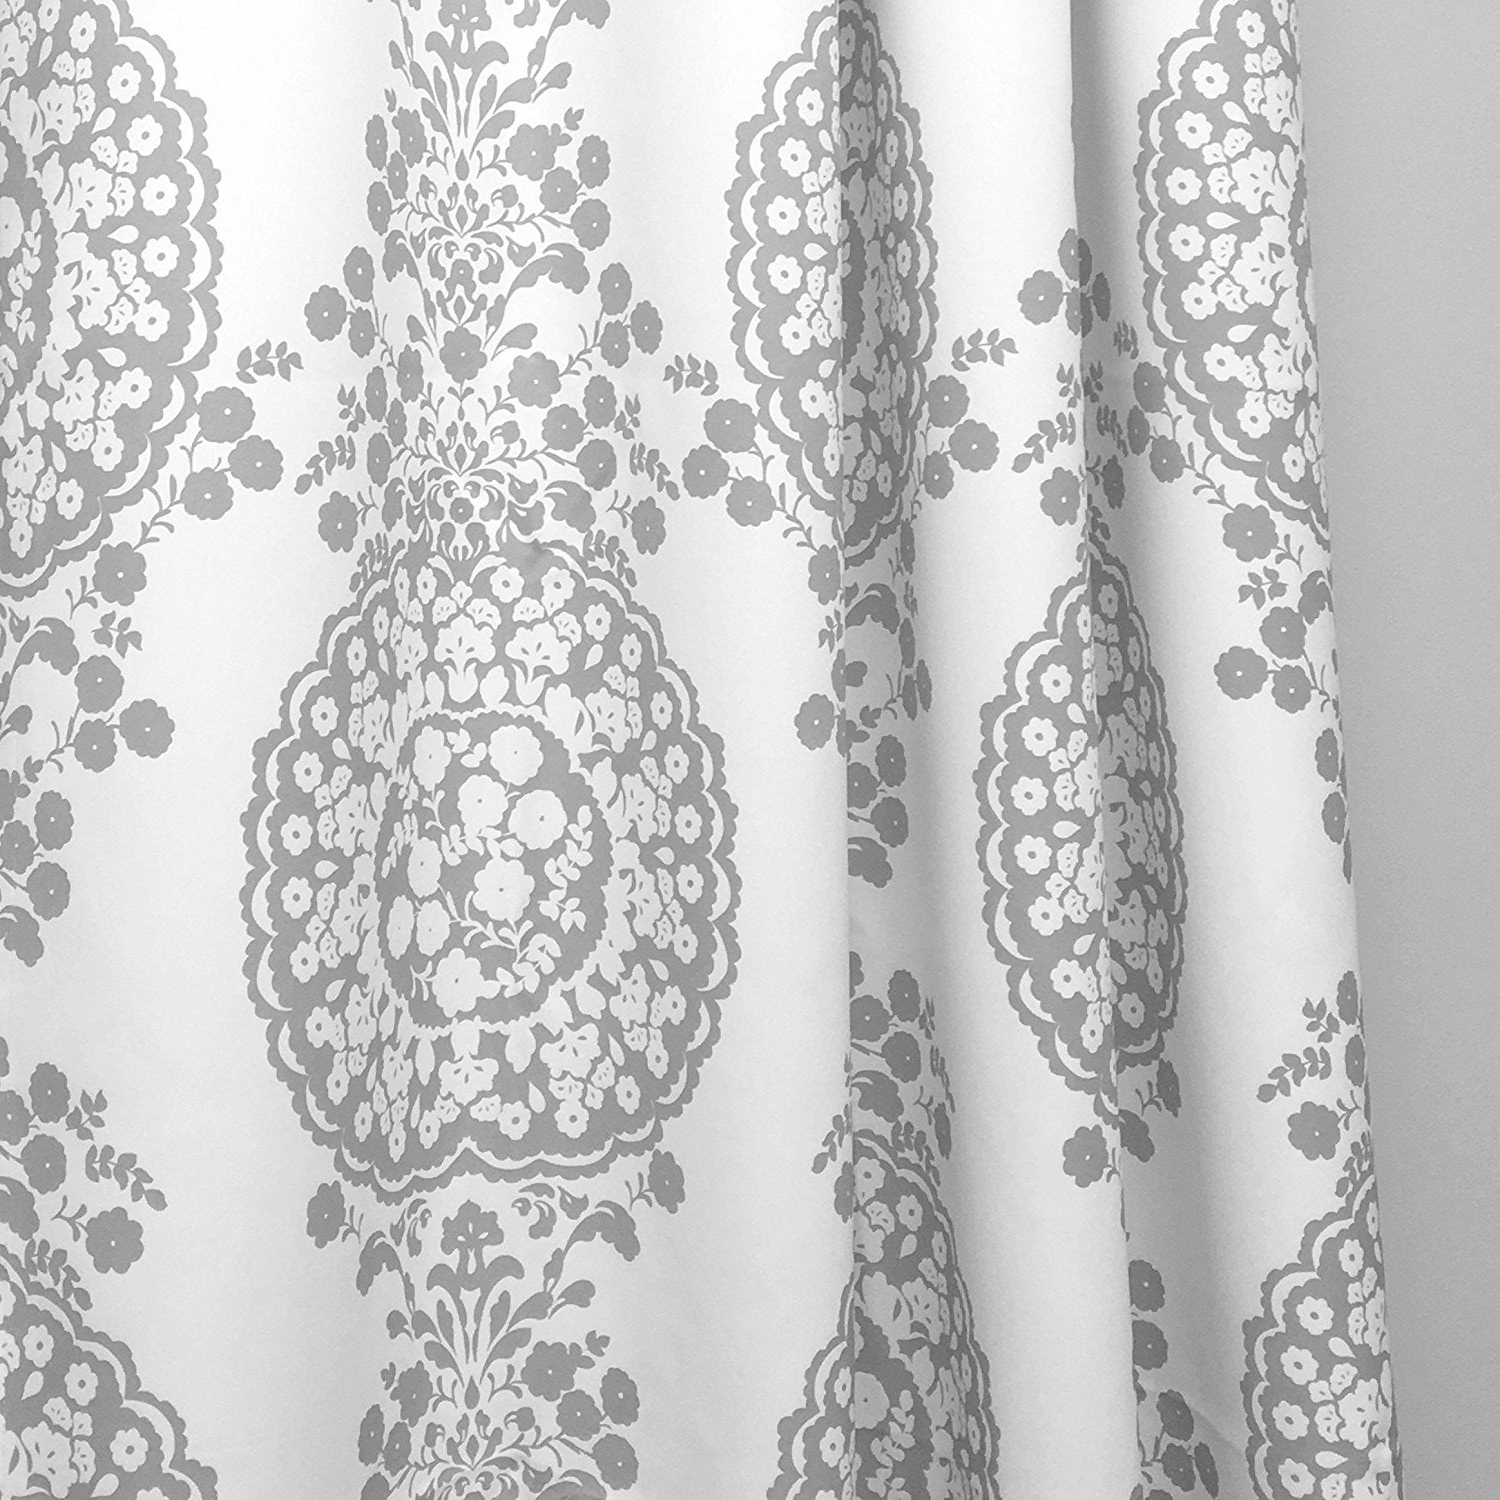 Pastel Damask Printed Room Darkening Grommet Window Curtain Panel Pairs With Well Known Driftaway Samantha Pastel Damask Printed Room Darkening Grommet Window Curtain Panel Pair (View 4 of 20)